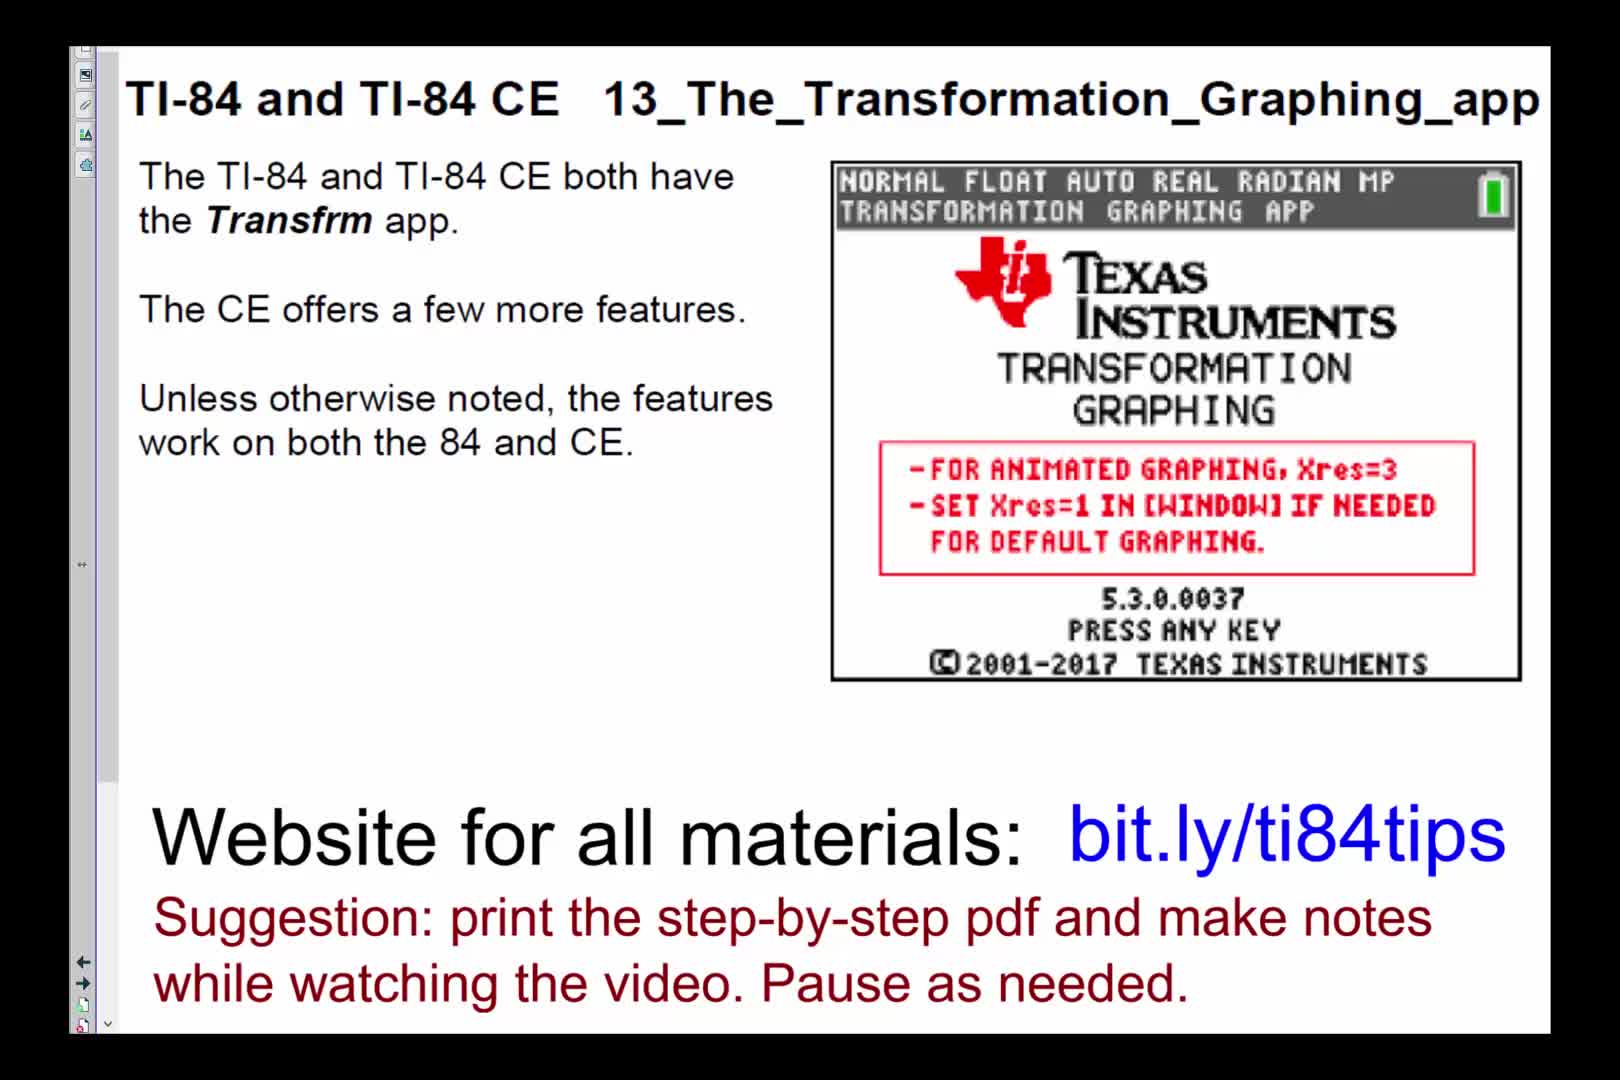 13_The_Transformation_Graphing_App_TI84andTI84CE